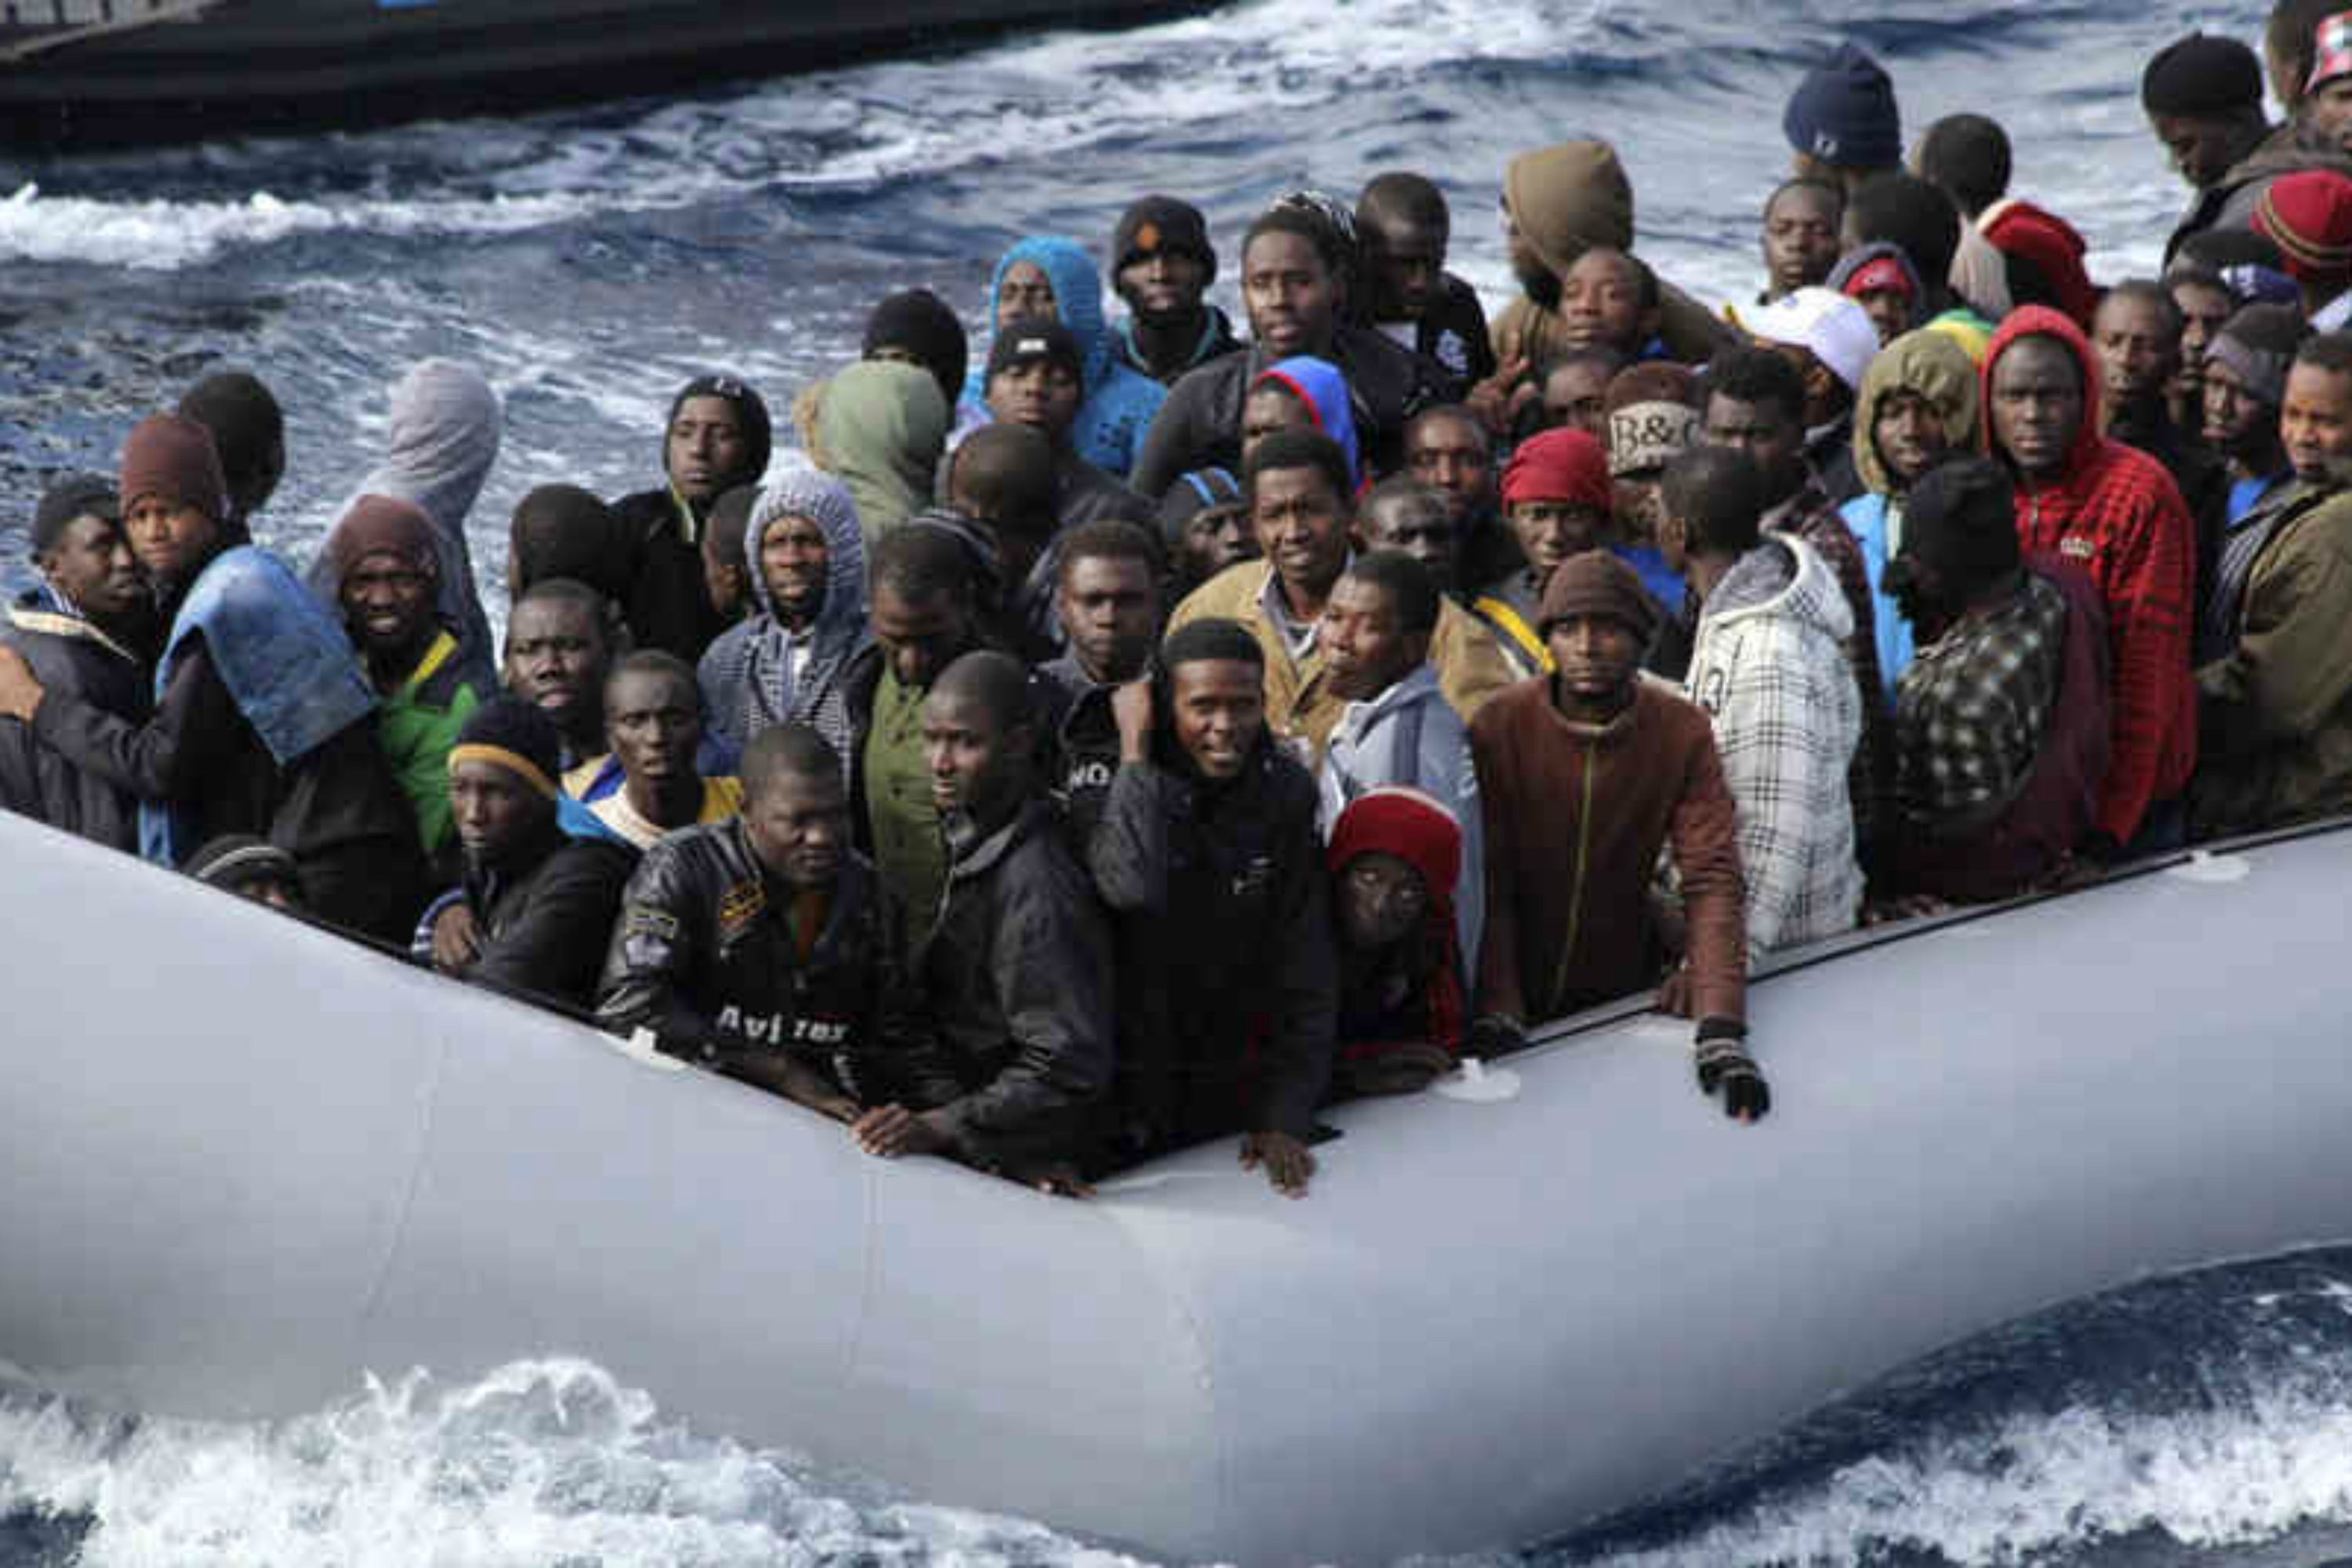 Record number of boat migrants reach Italy in 2016 – EURACTIV.com